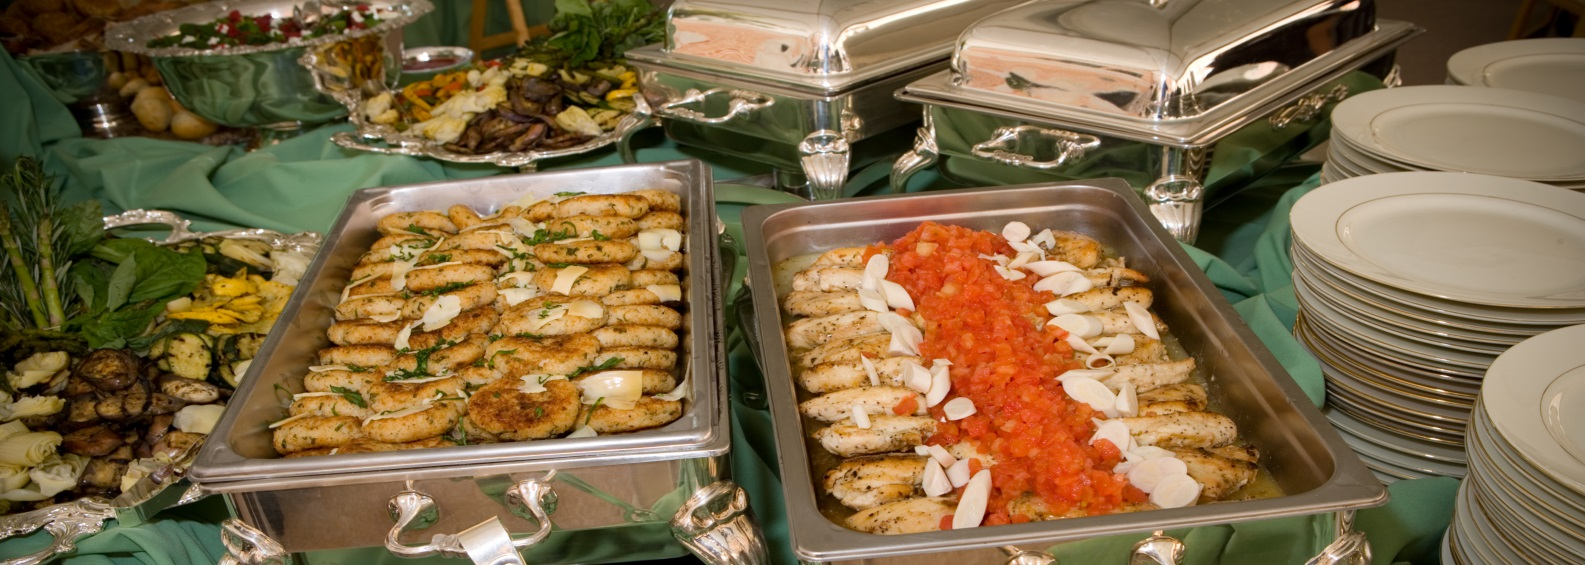 houston corporate catering